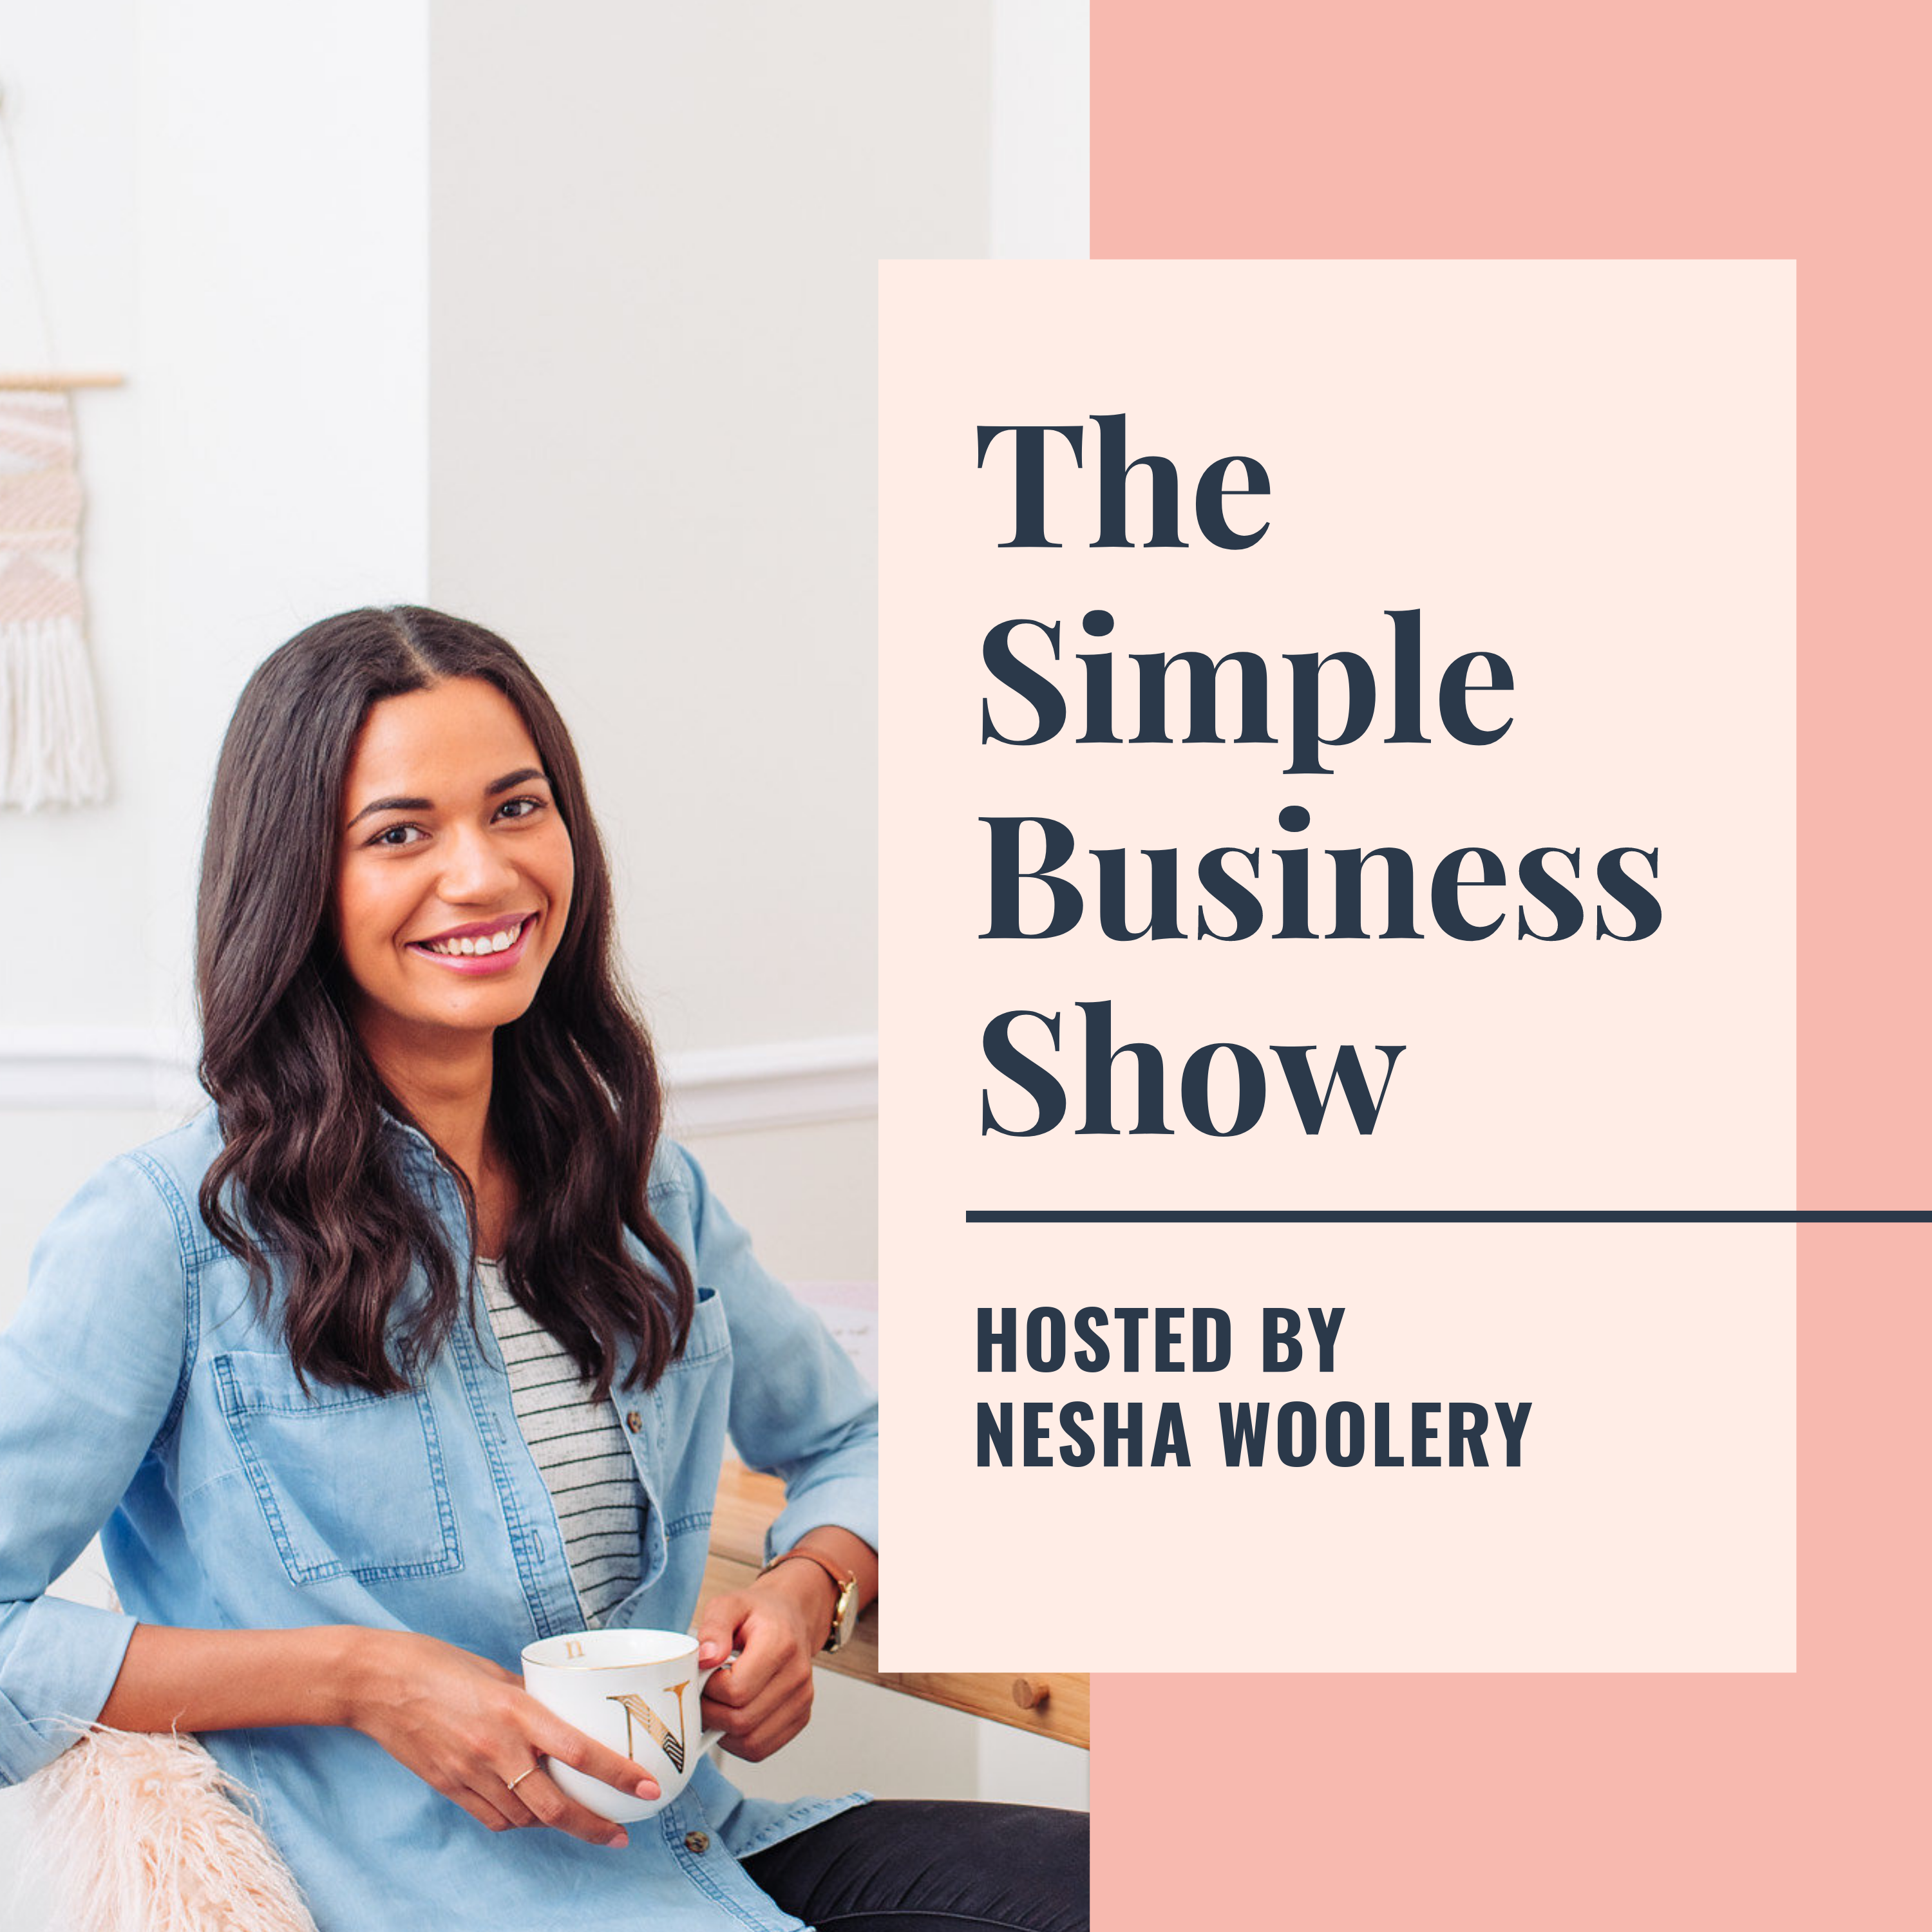 The Simple Business Show show image